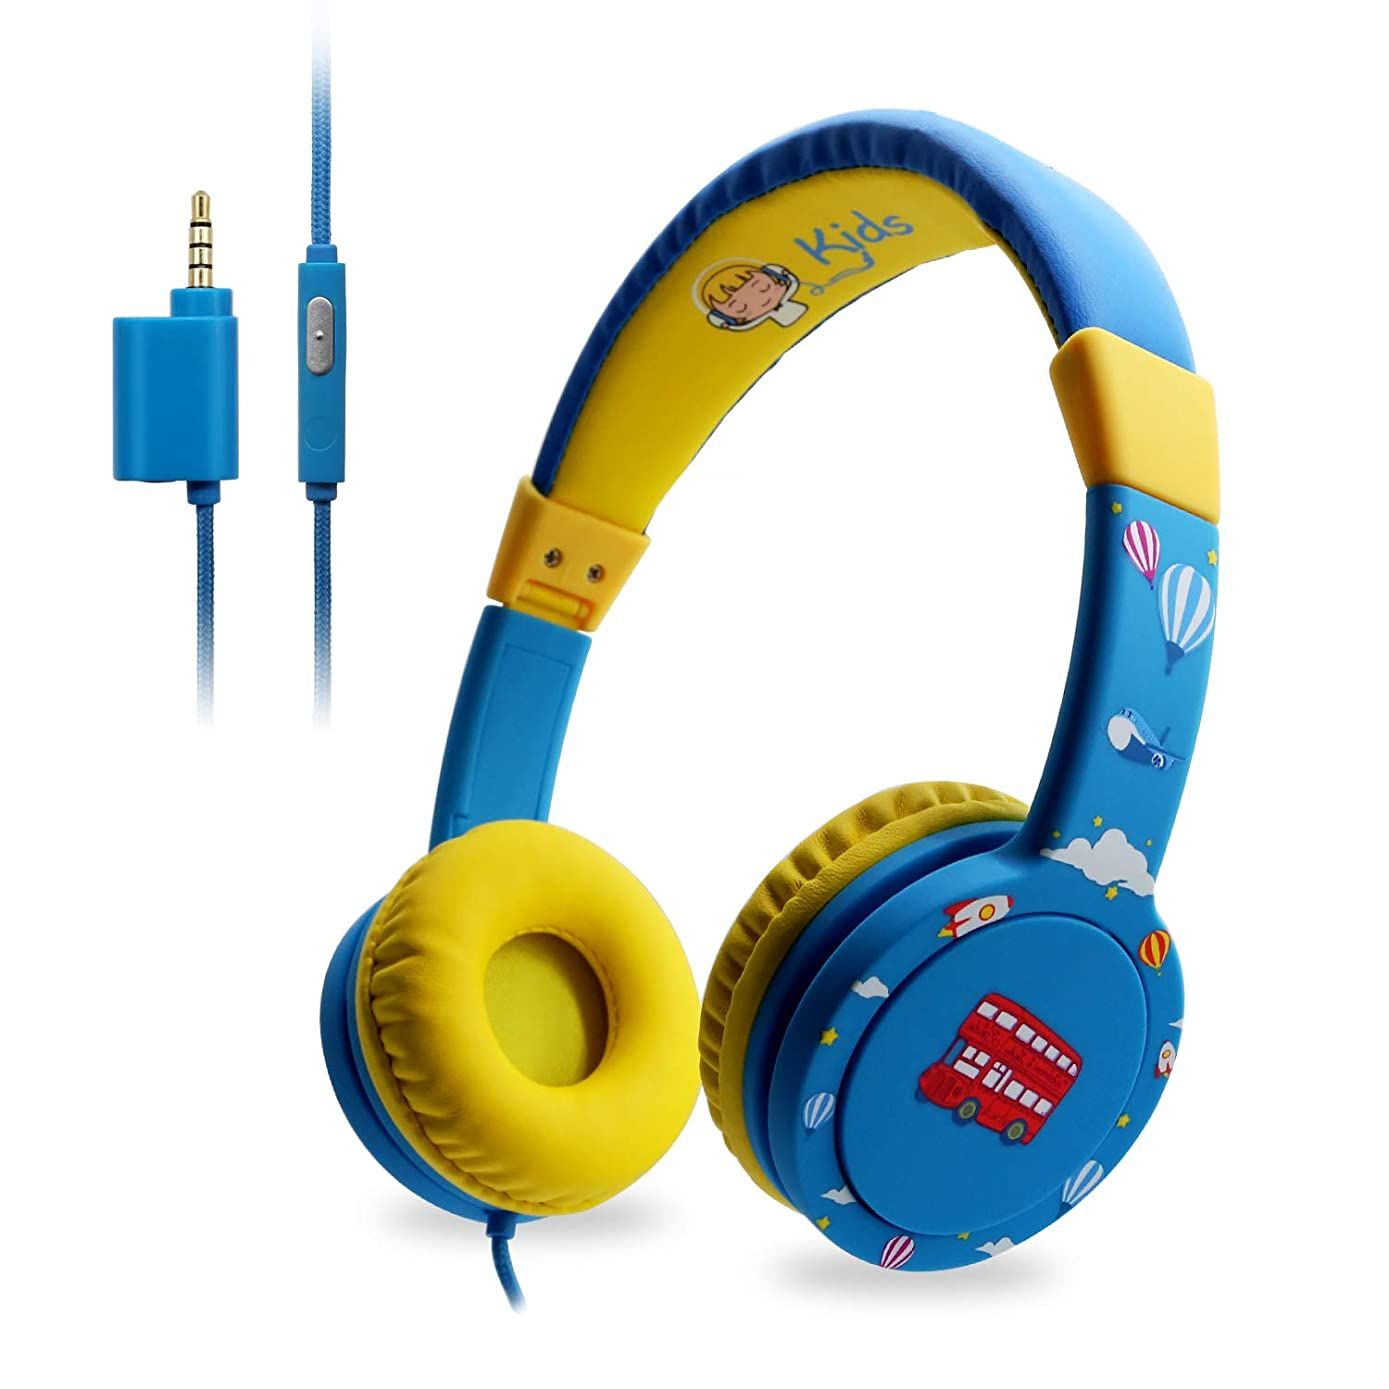 EasySMX Kids Headphones - Wired Headphones for Children Girls Boys, Adjustable Headband, Stereo Sound, in line Control,Share Port, 3.5mm Aux Jack, Child-Friendly ABS, 85dB Volume Limited - Blue